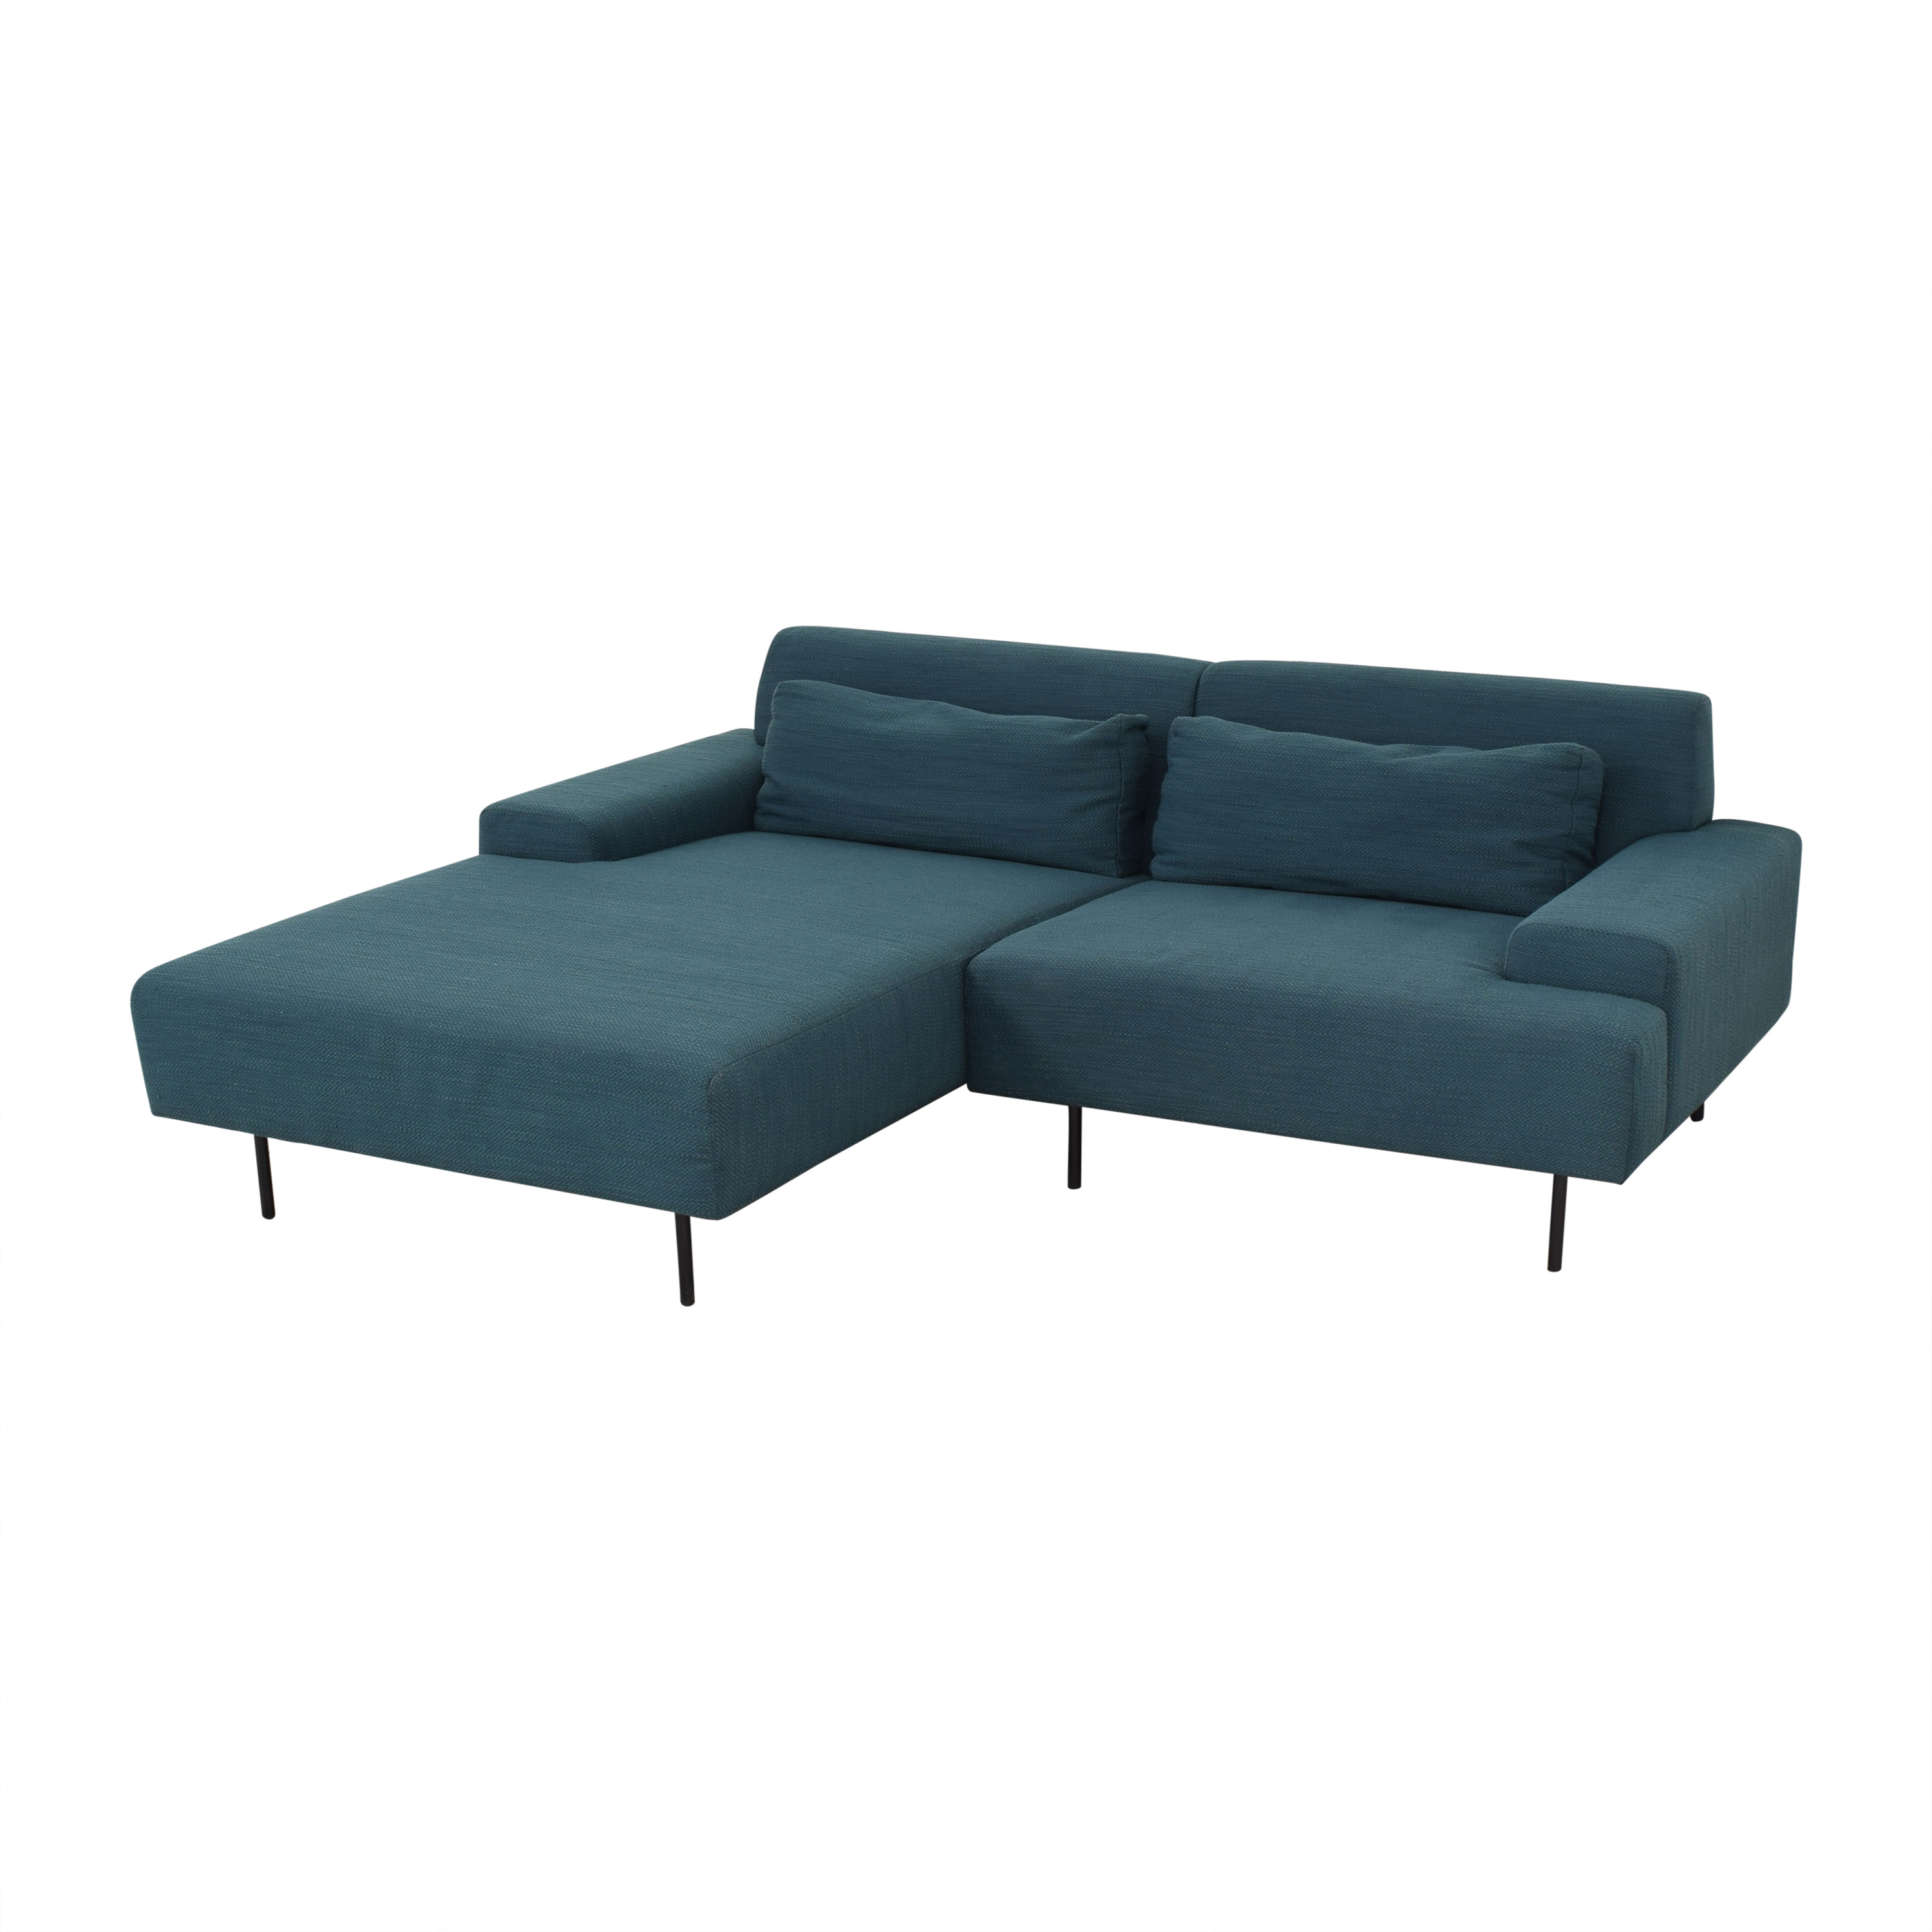 West Elm West Elm Beckham Chaise Sectional Sofa discount